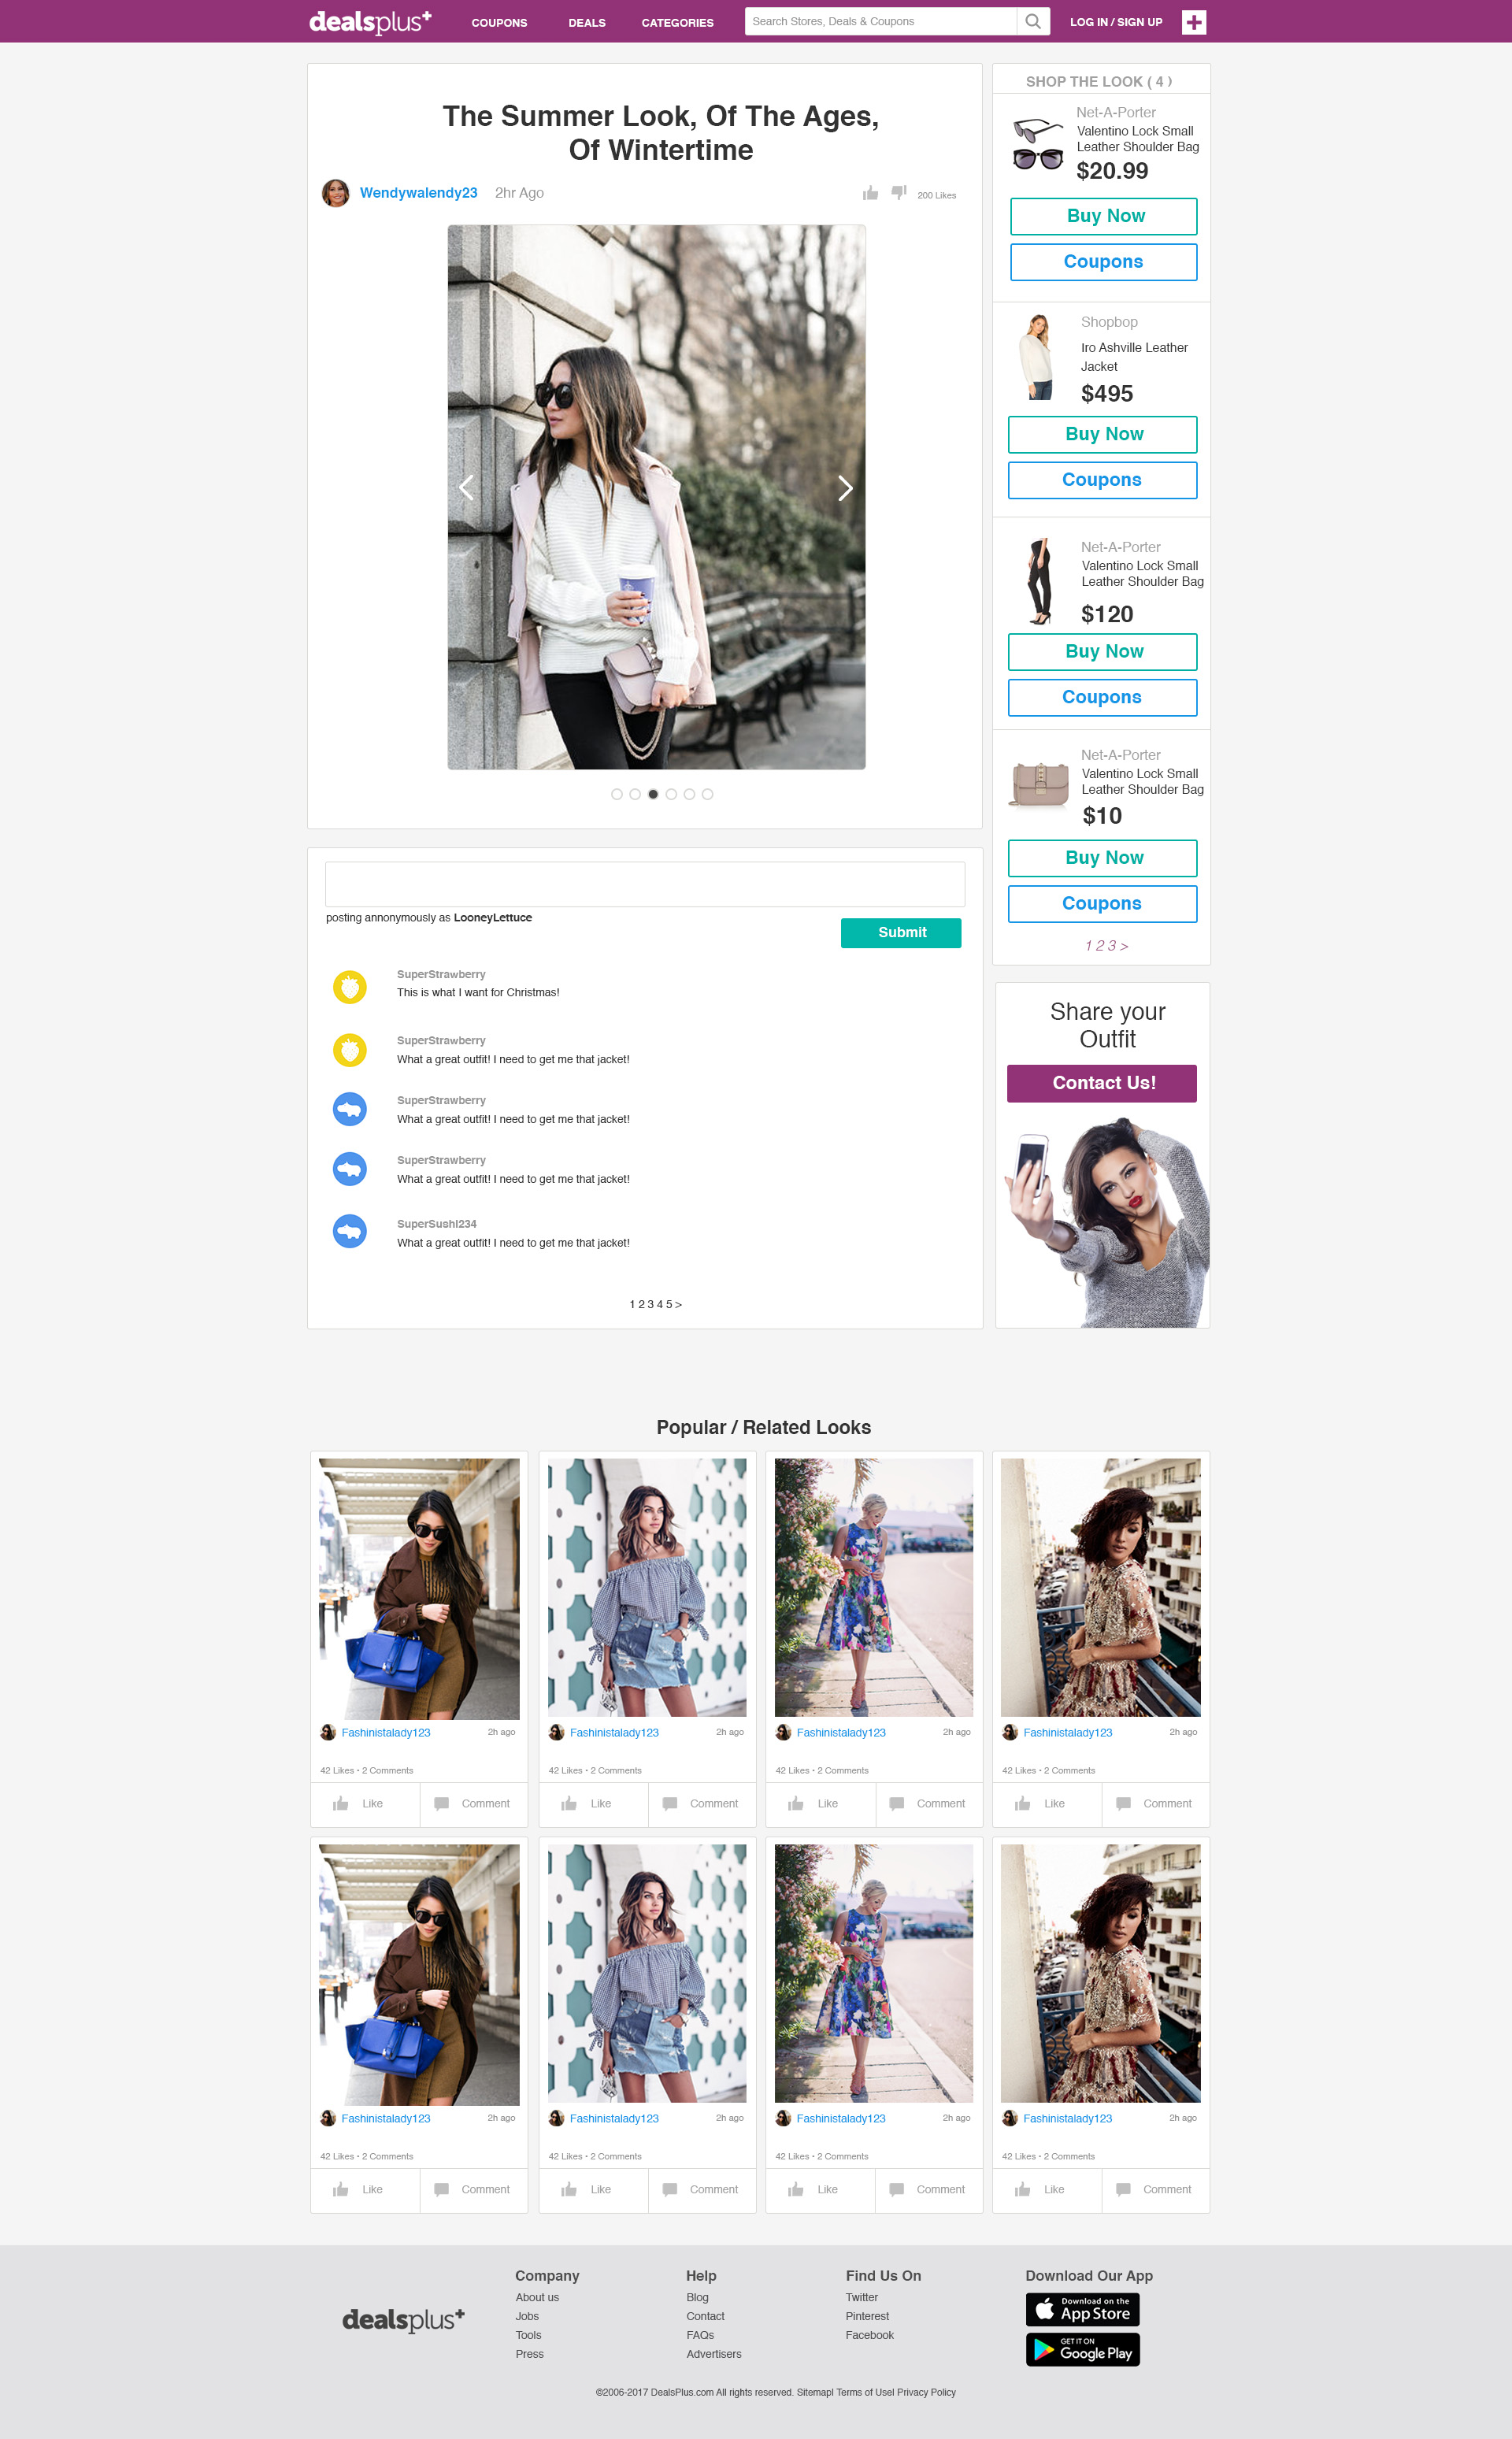 Shop The Look (The backend would retrieve the items listed from the Influencer's post)